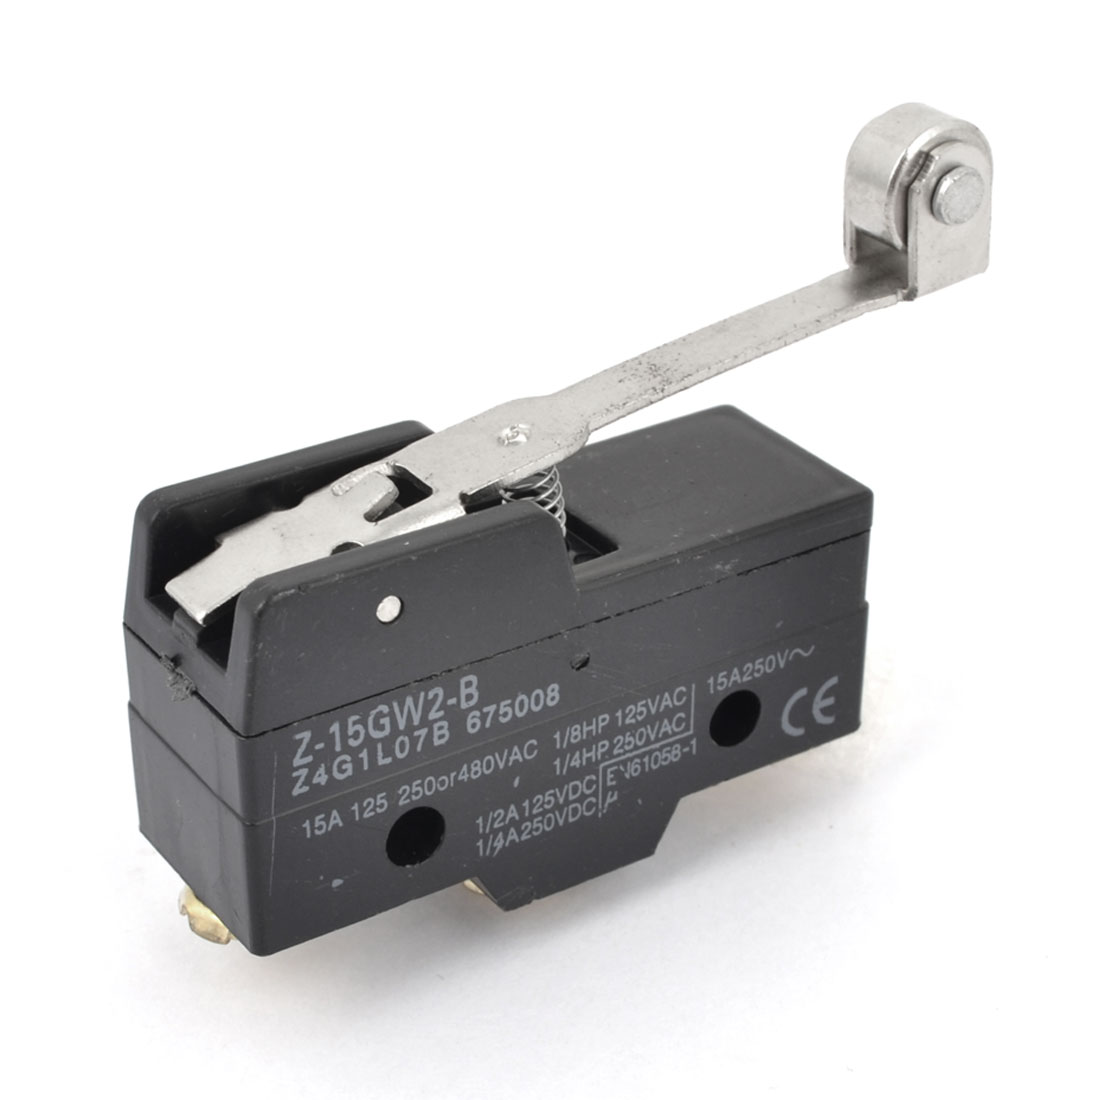 Z-15GW2-B Normally Open/Close Parallel SPDT Momentary Roller Lever Basic Micro Limit Switch Micorswitch